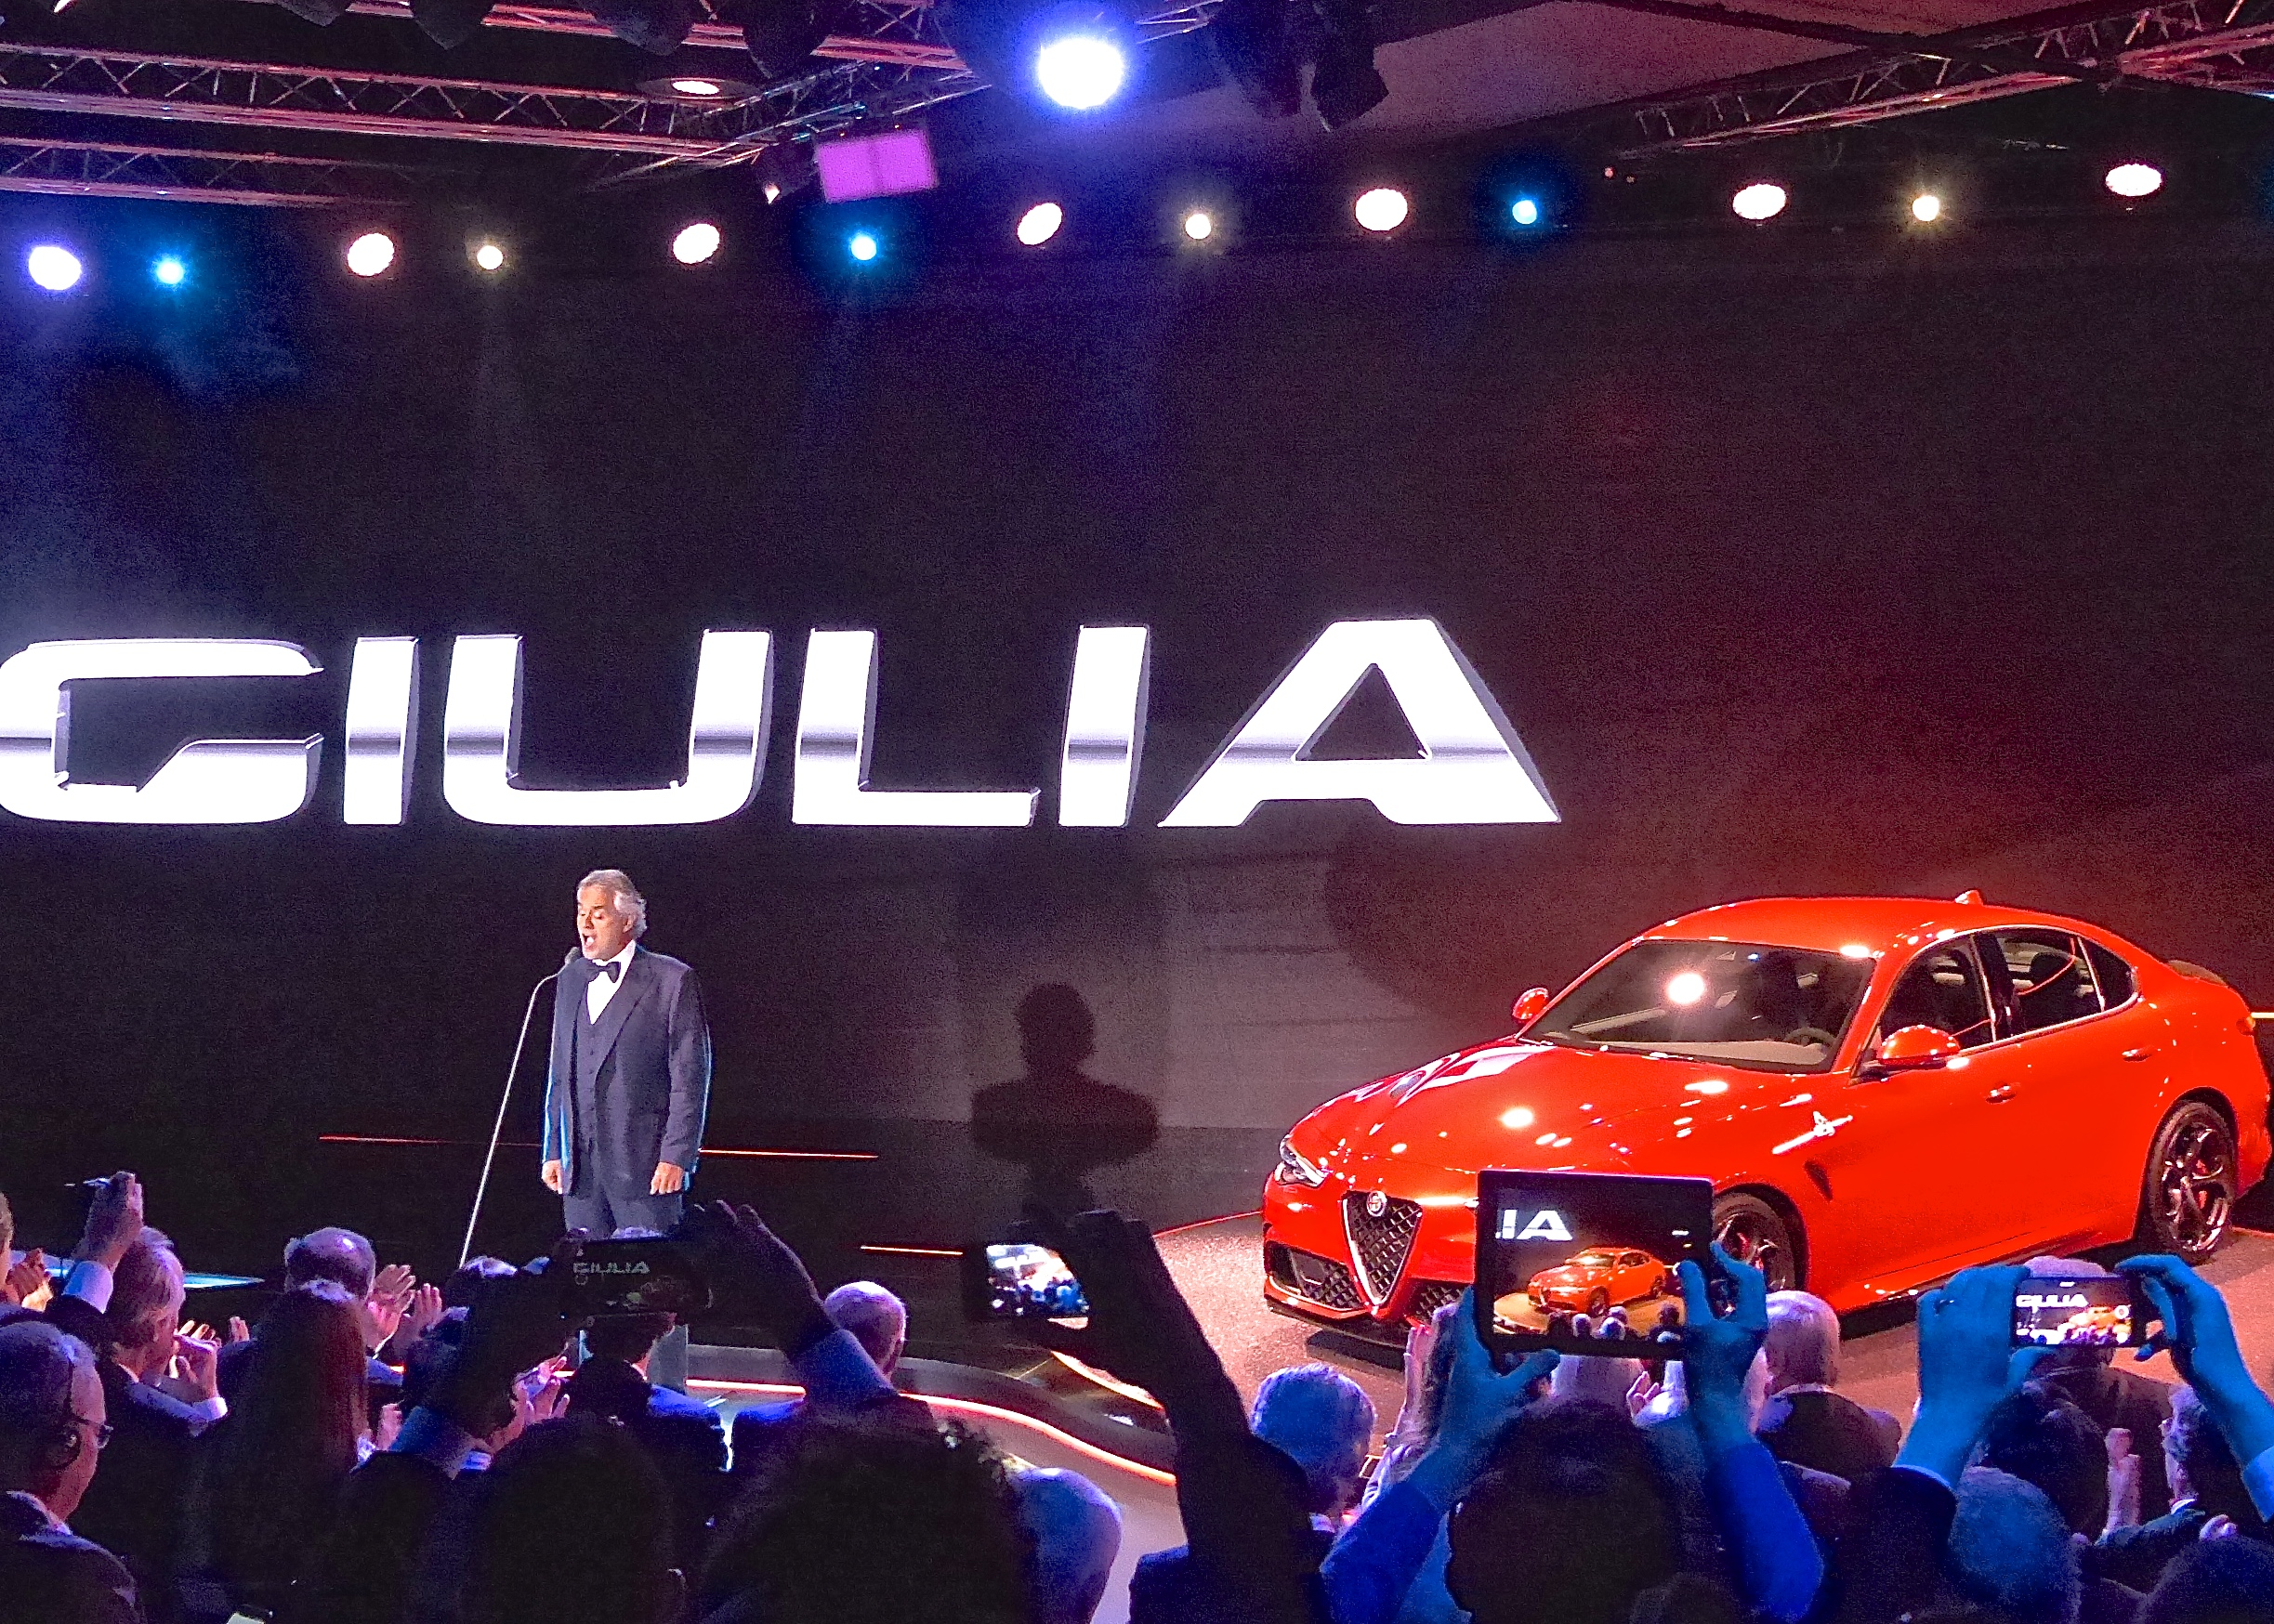 Alfa Romeo invoked superstar tenor Andrea Bocelli to serenade the media and accompany the introduction of the Giulia.